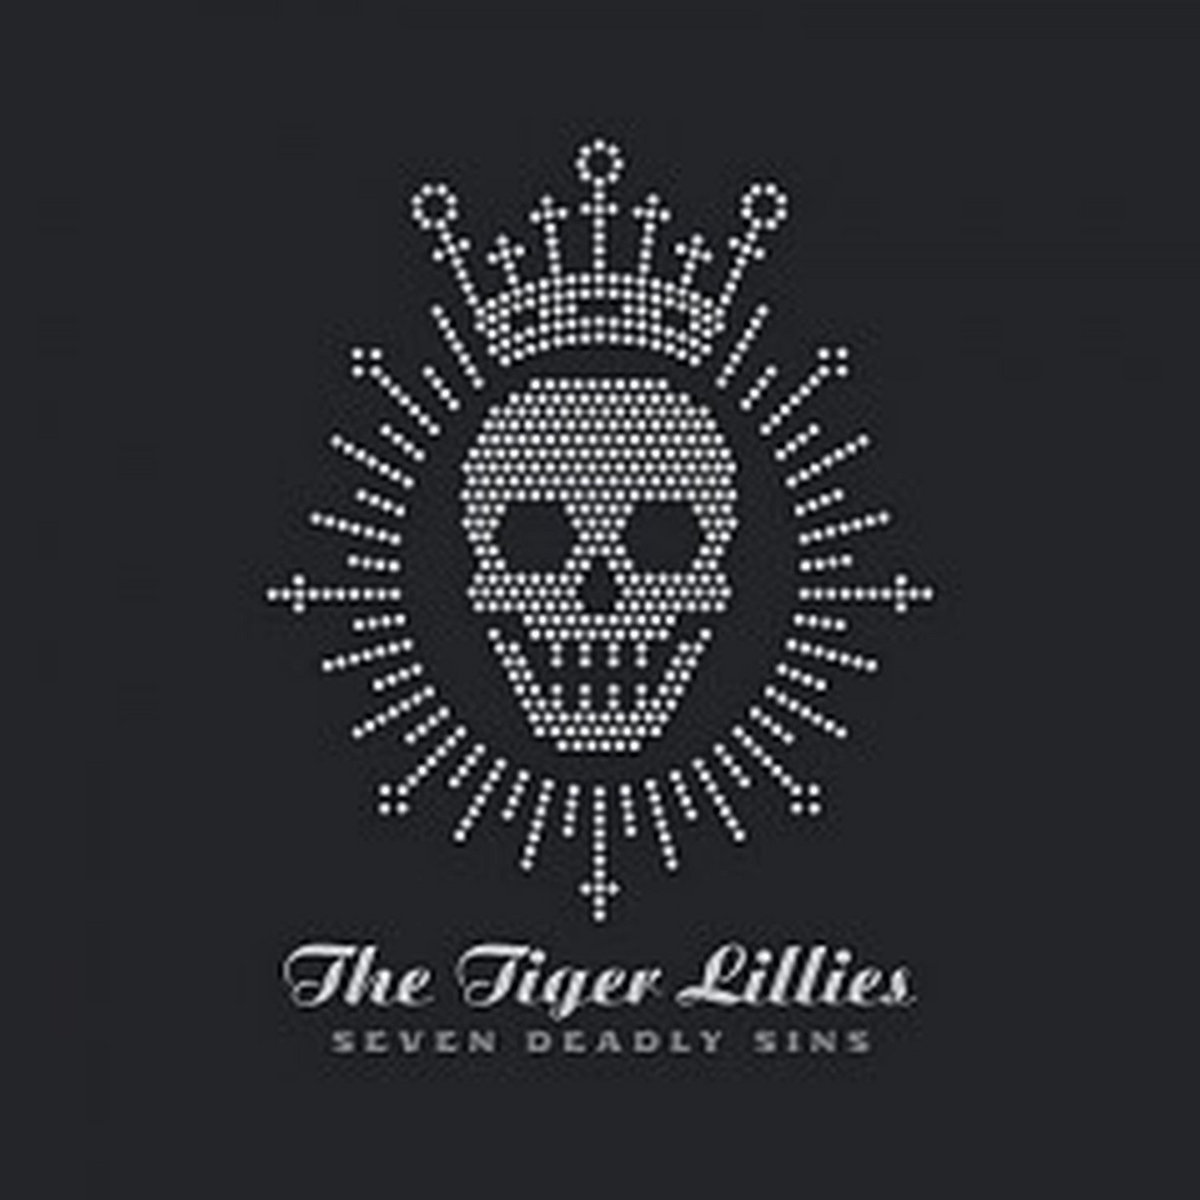 Seven deadly sins the tiger lillies seven deadly sins biocorpaavc Image collections